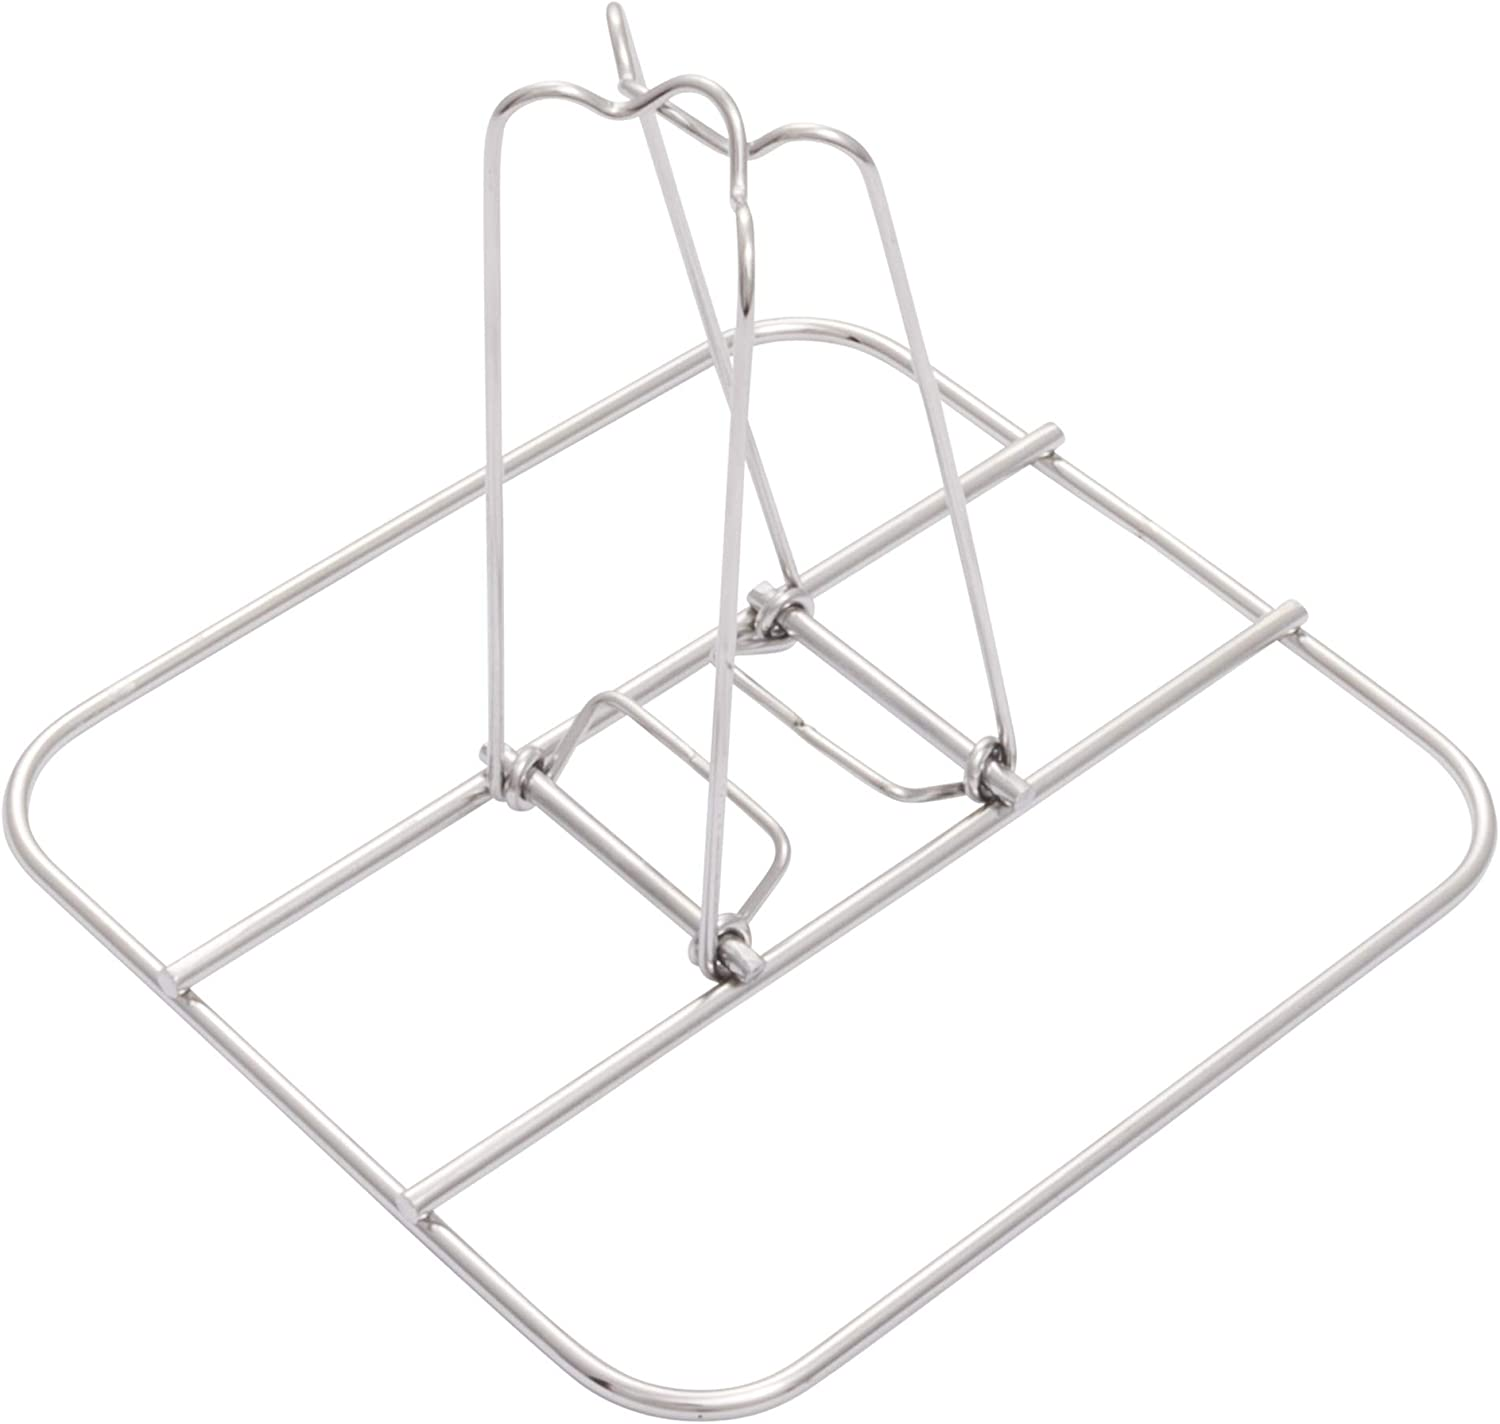 Char-Broil 7884572R08 Grill Plus Beer Can Chicken Roasting Rack, Silver